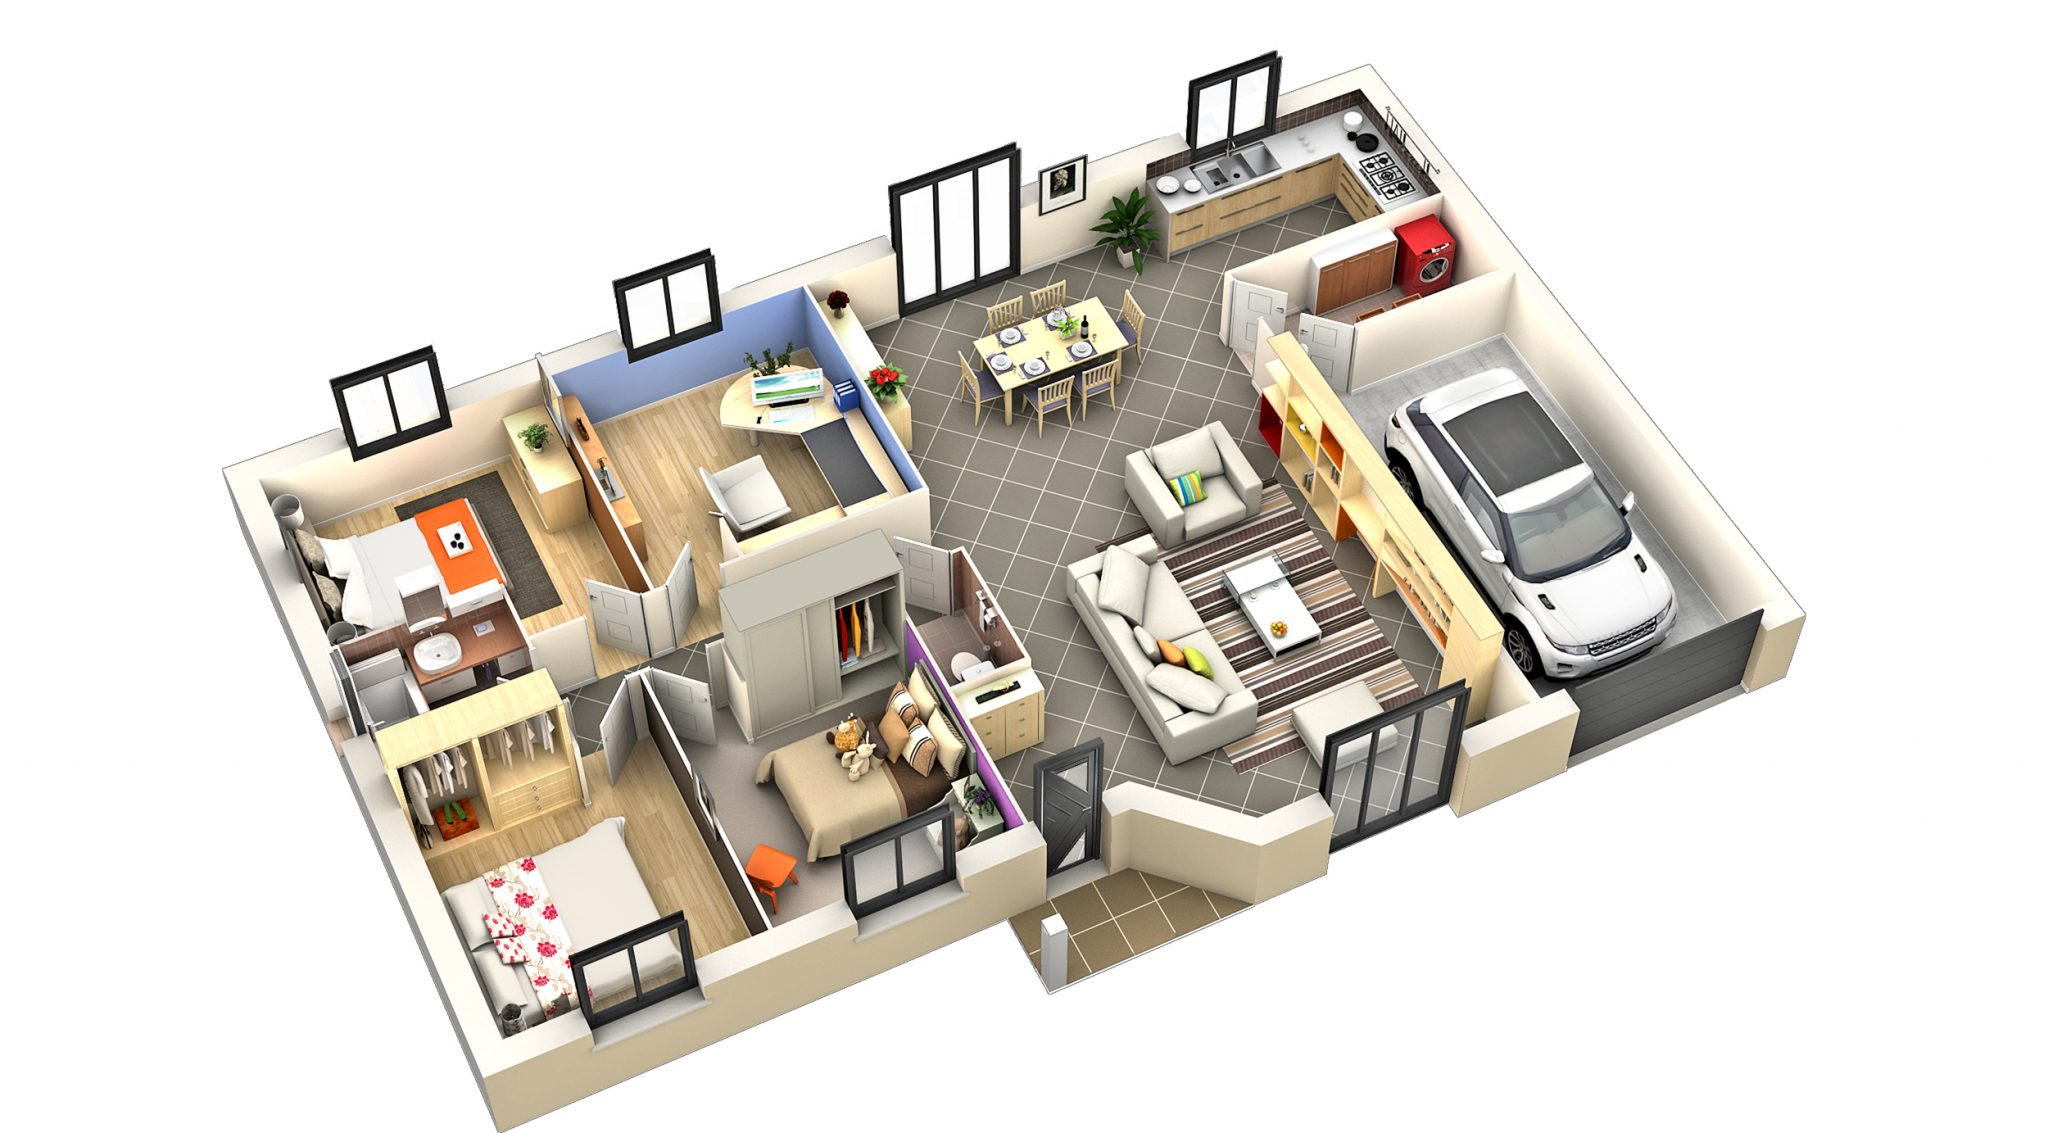 Plan interieur maison plain pied l 39 impression 3d for Plan maison interieur 3d